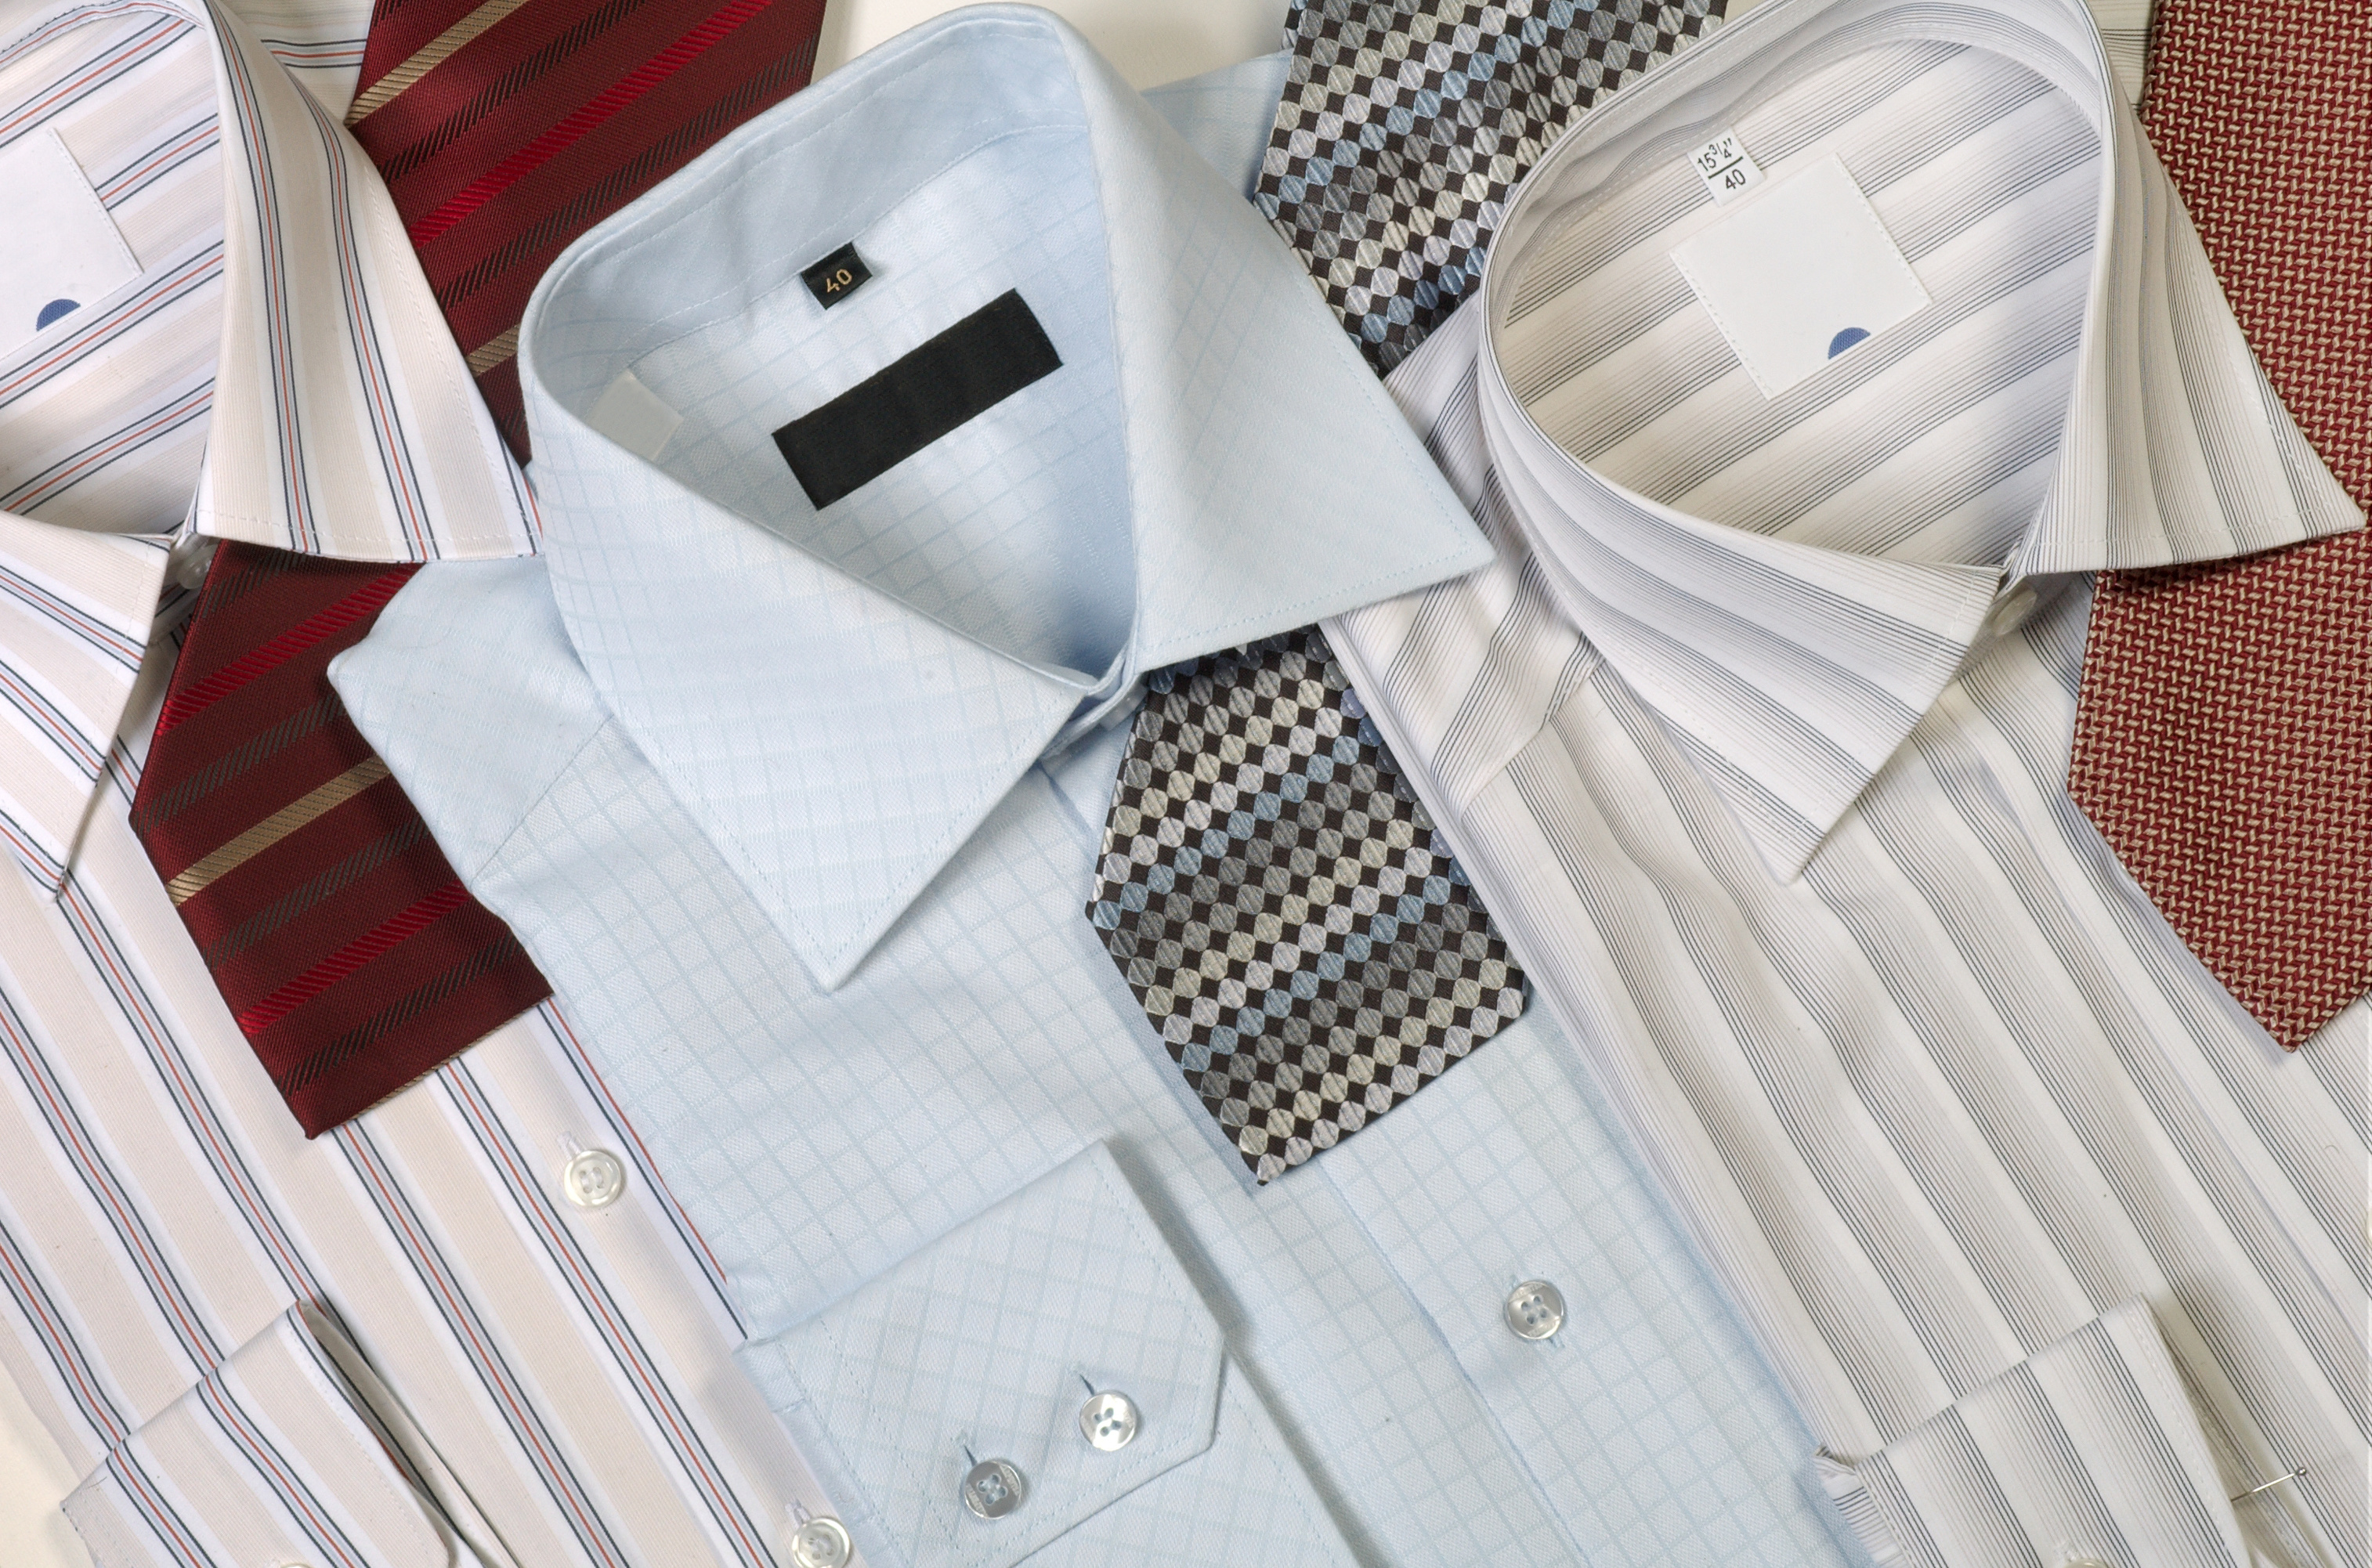 All about starch for Starch on dress shirts